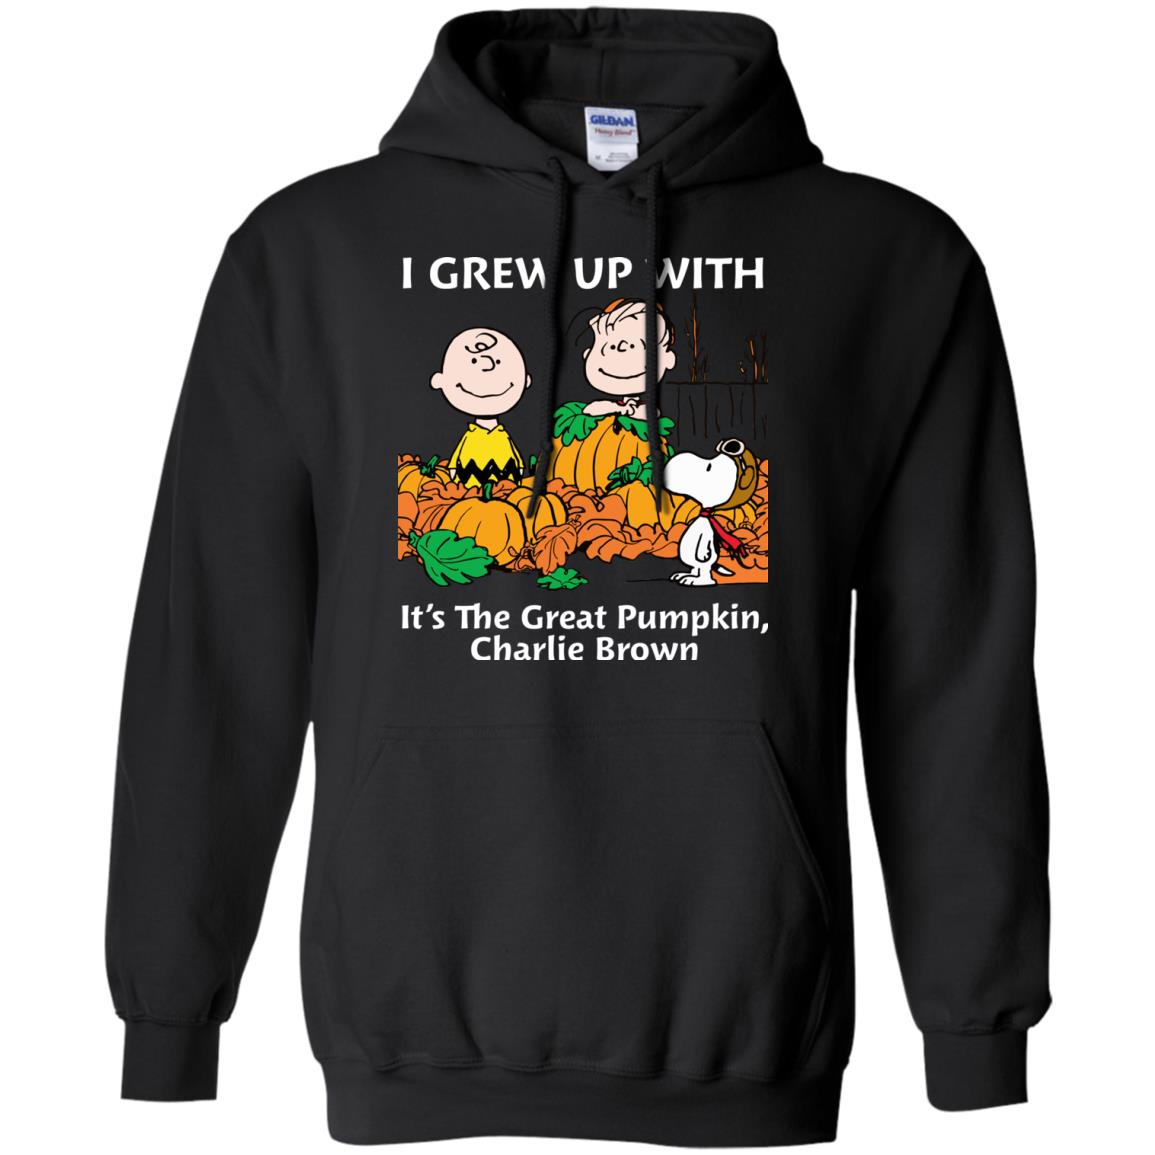 image 270 - Charlie Brown: I grew up with It's The Great Pumpkin shirt, sweater